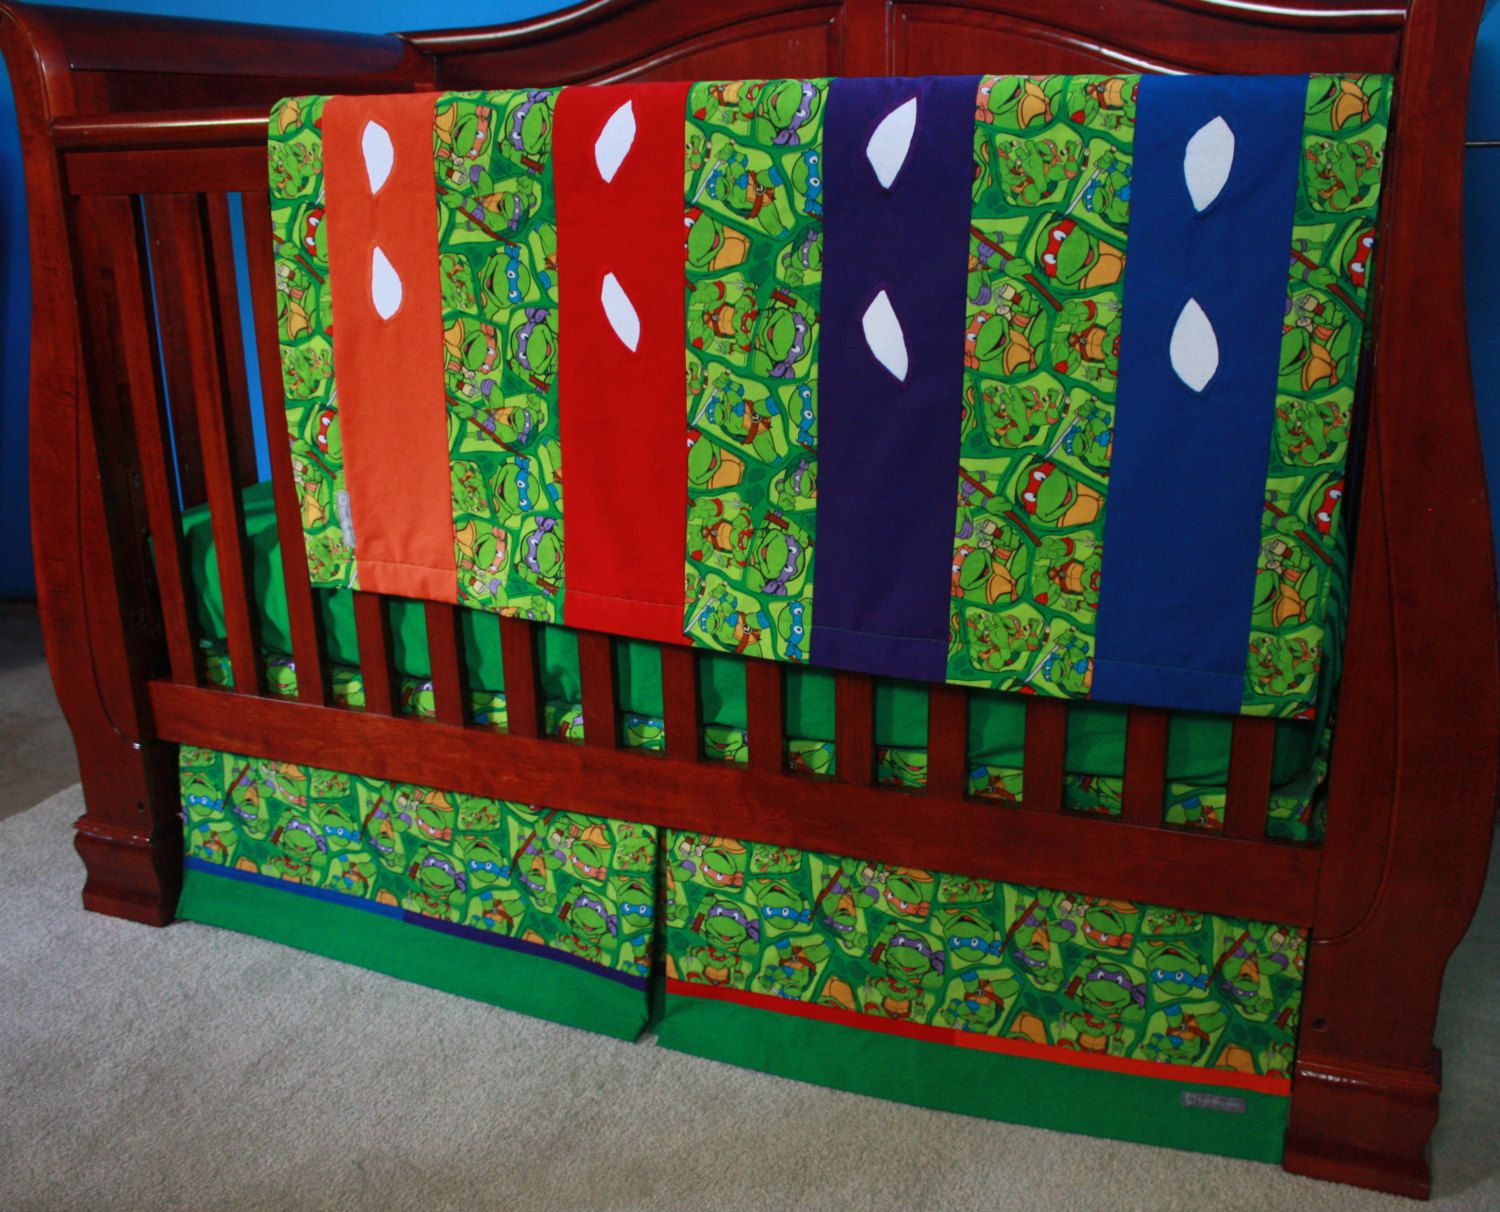 Teenage Mutant Ninja Turtle Baby Bedding By Bedhogshop On Etsy 230 00 Carterleewilder Bebe Gorditas Costura